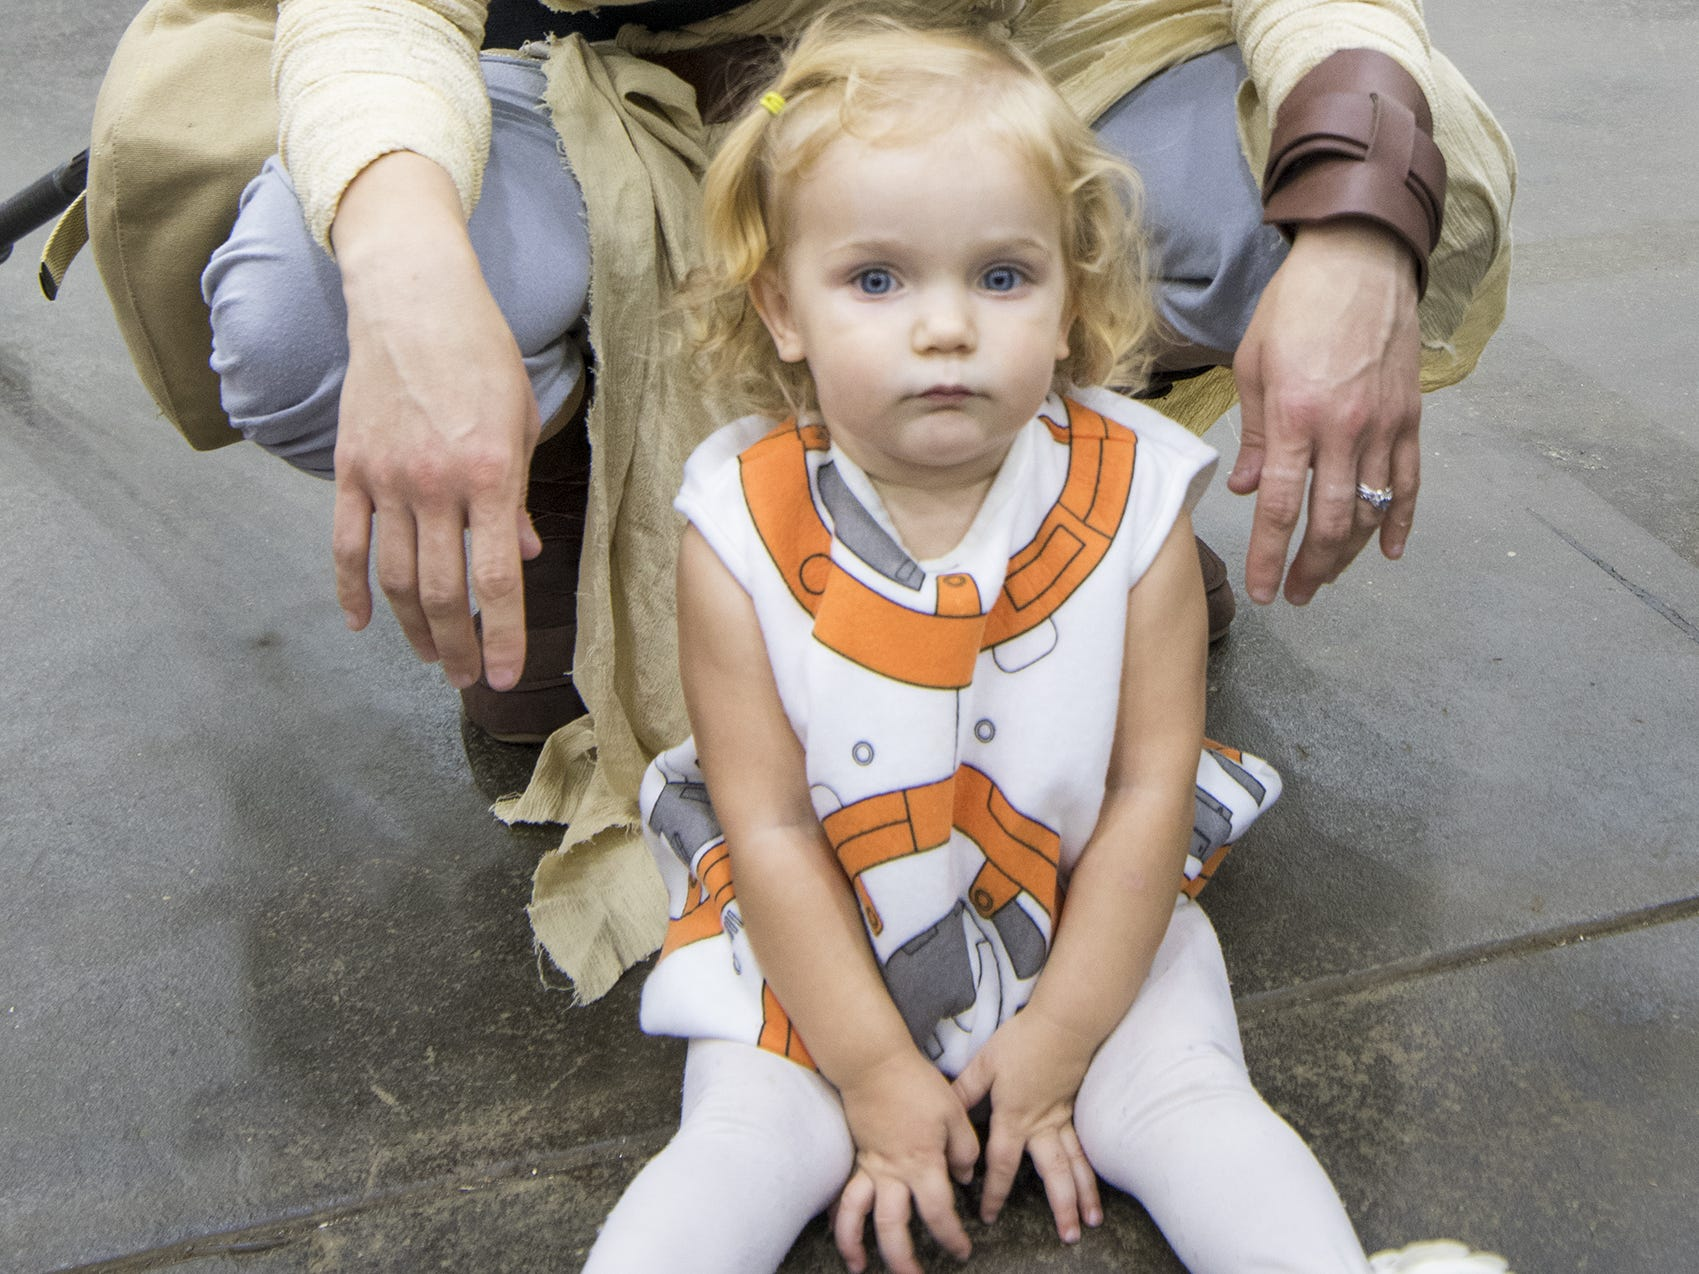 Jess and Kate, 2, dress as Rey and BB-8 from Star Wars.